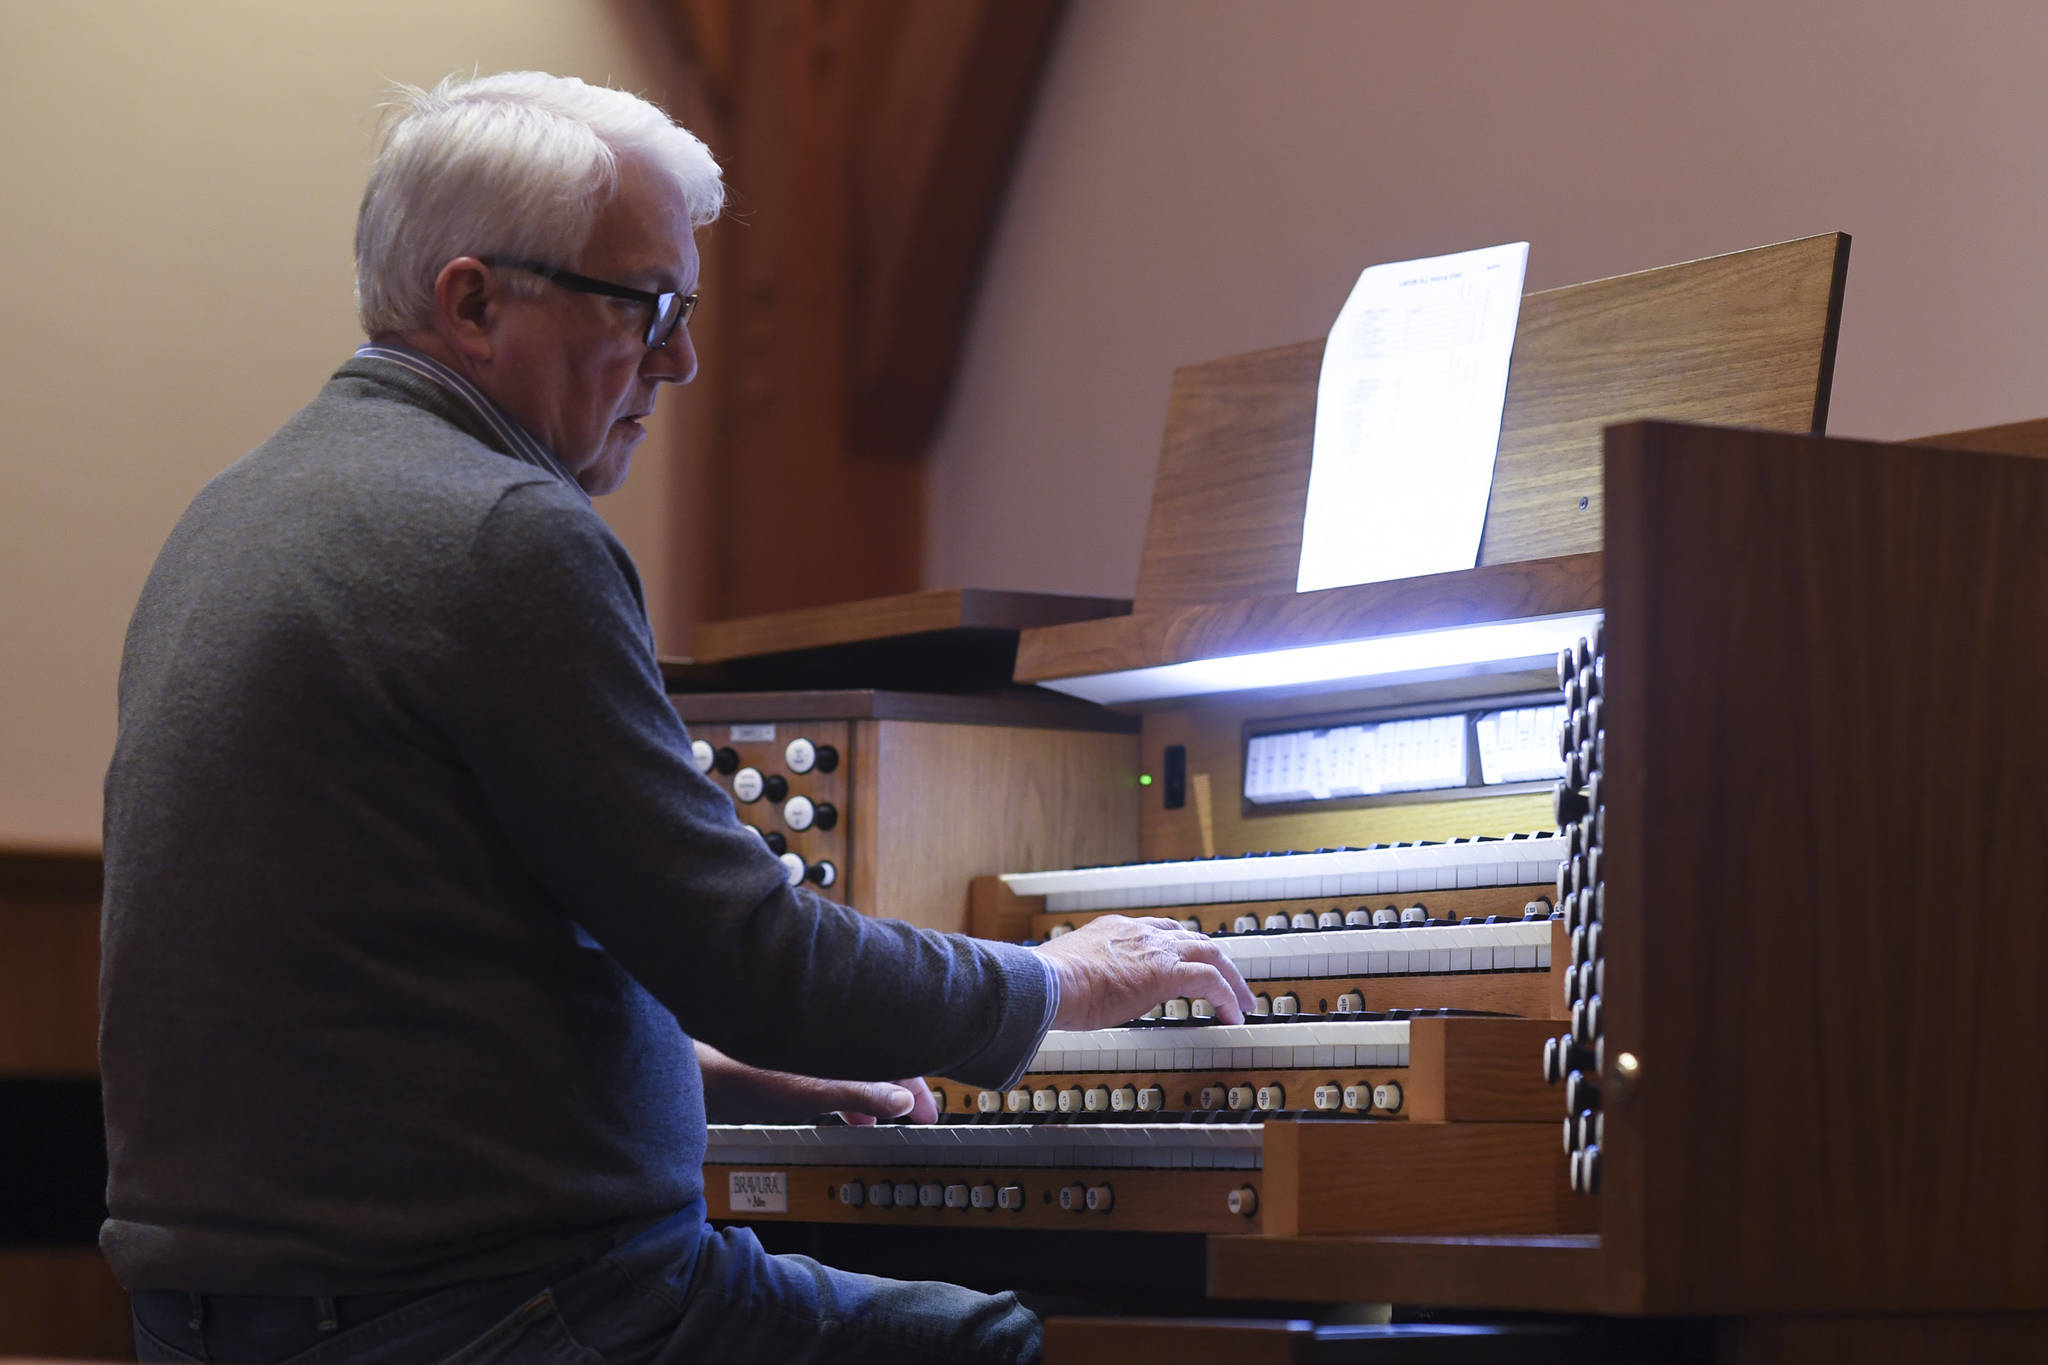 Jonas Nordwall, organist and artistic director of music for the First United Methodist Church in Portland, Oregon, works on Thursday at preparing a 2013 Allen Bravura Organ for its first public concert at Holy Trinity Episcopal Church. Learn more by watching the video below. (Michael Penn | Juneau Empire)